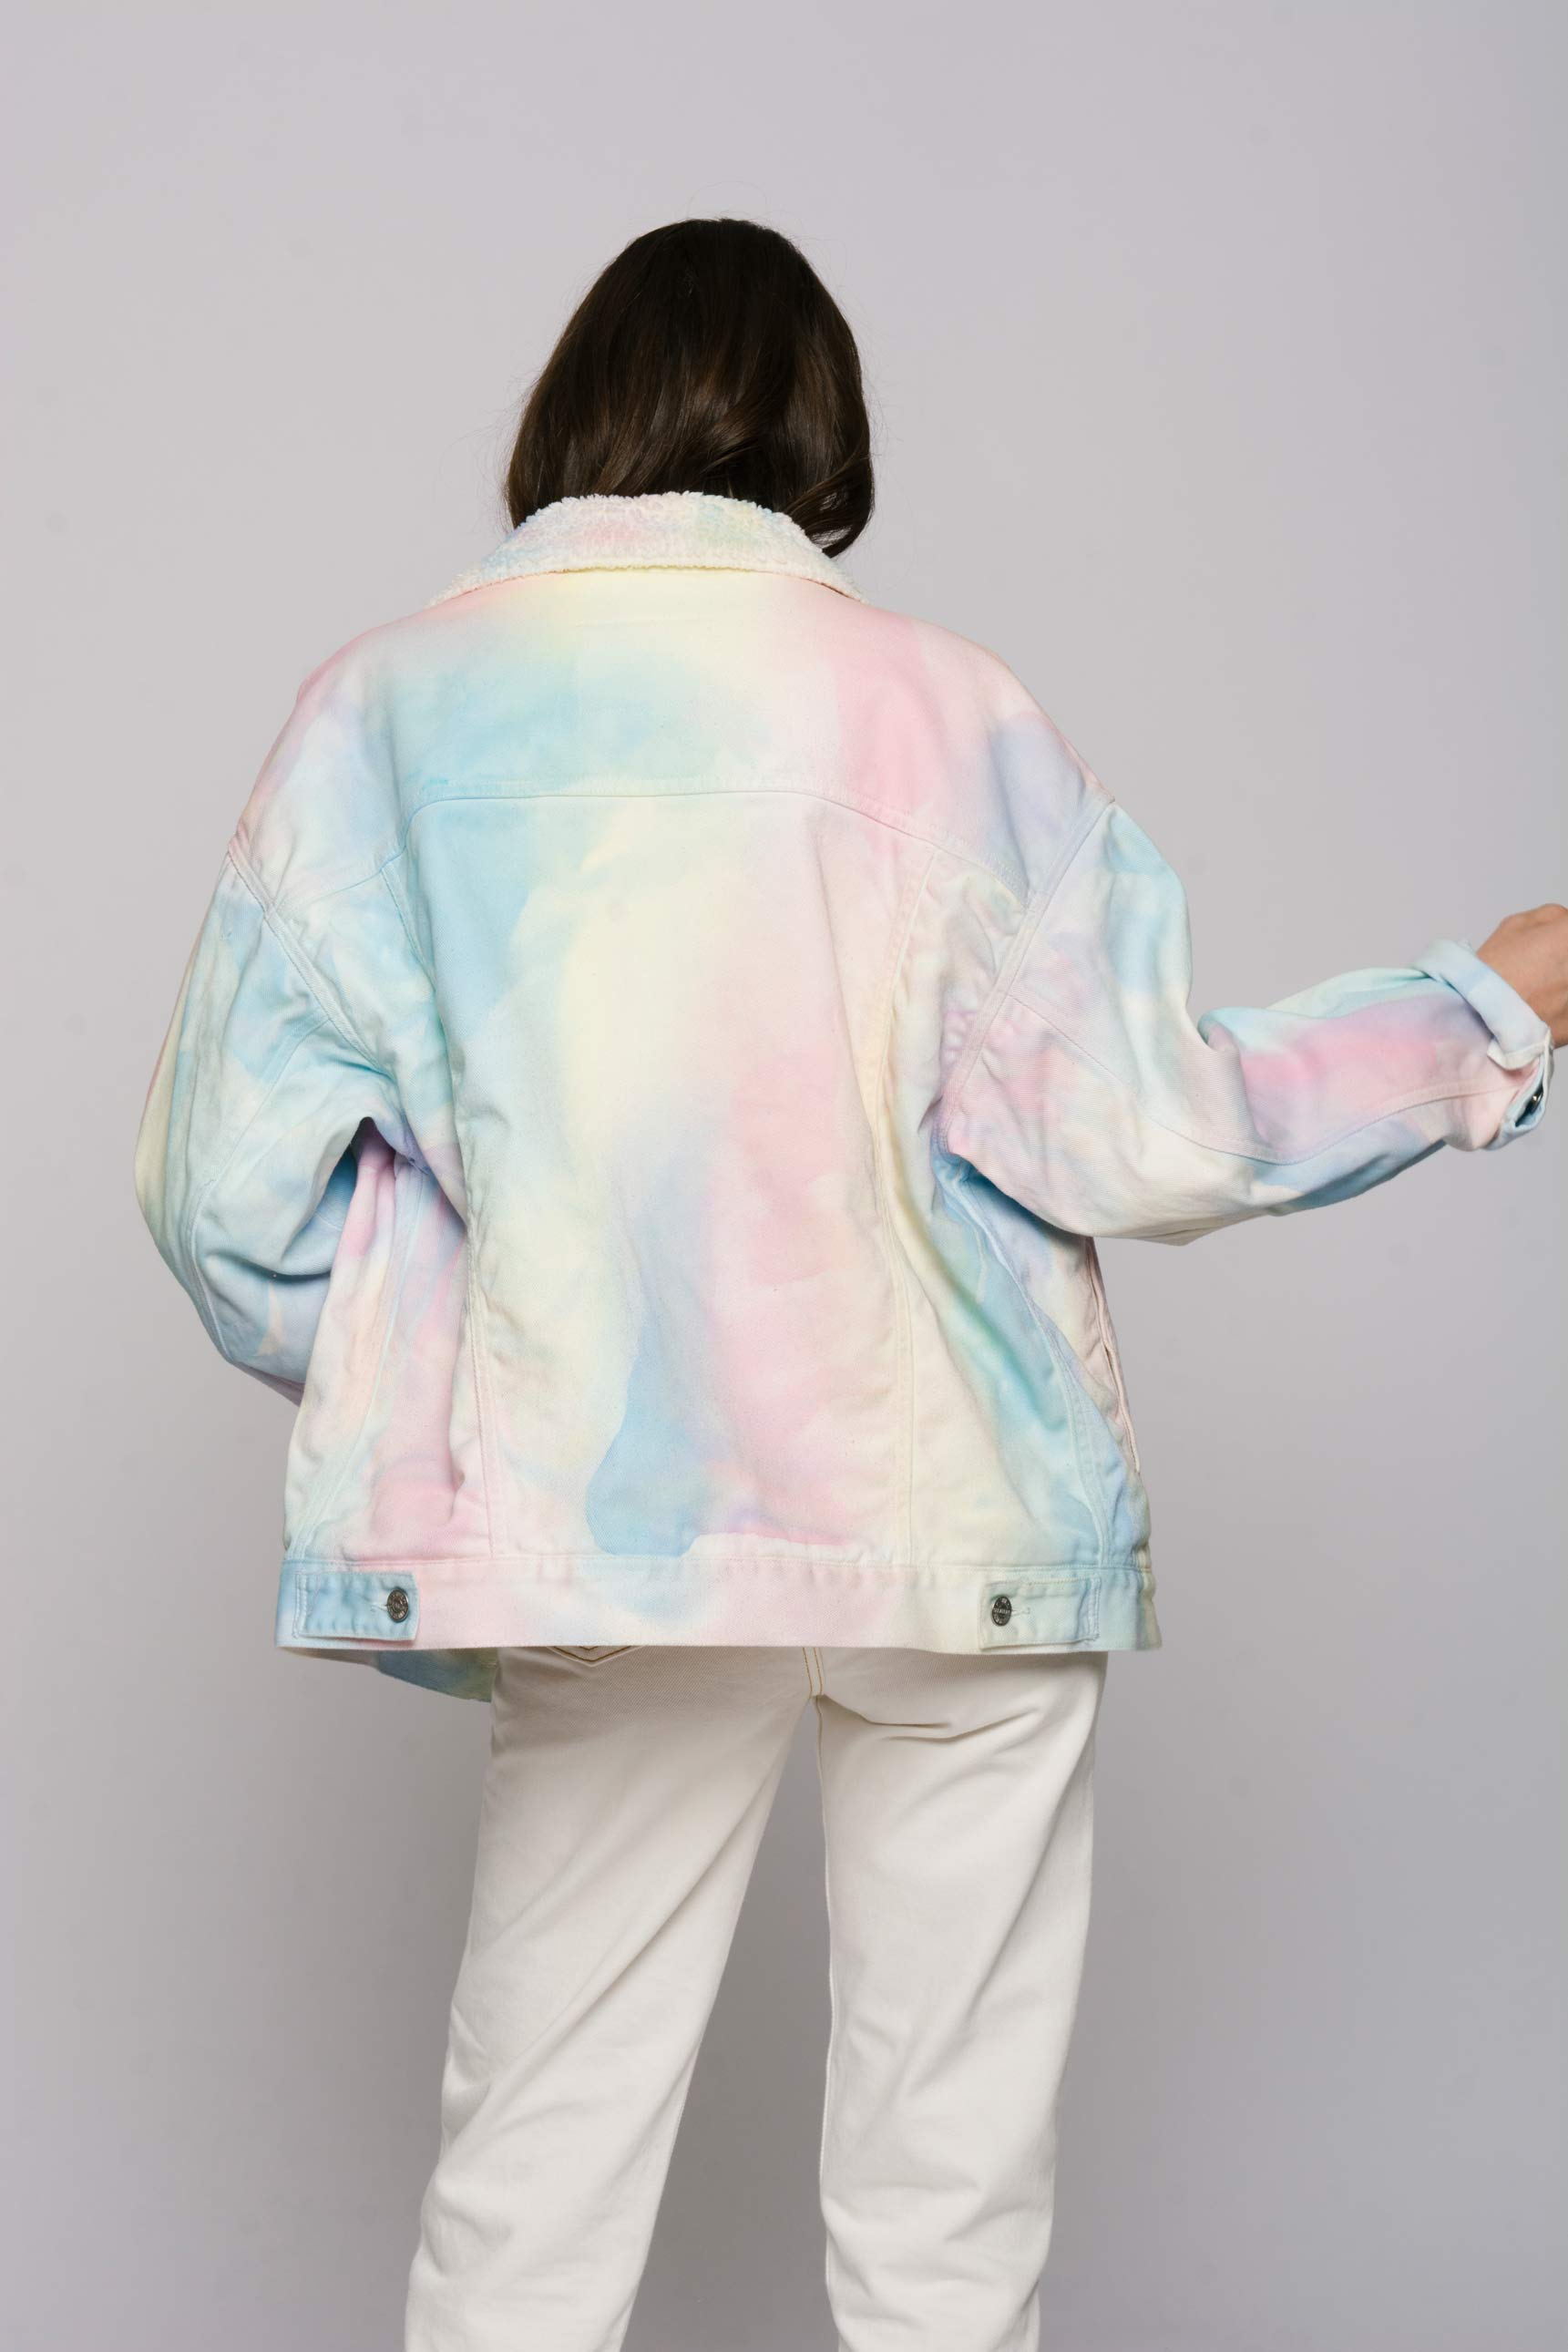 The Shearline Jacket Woman The Unicorn